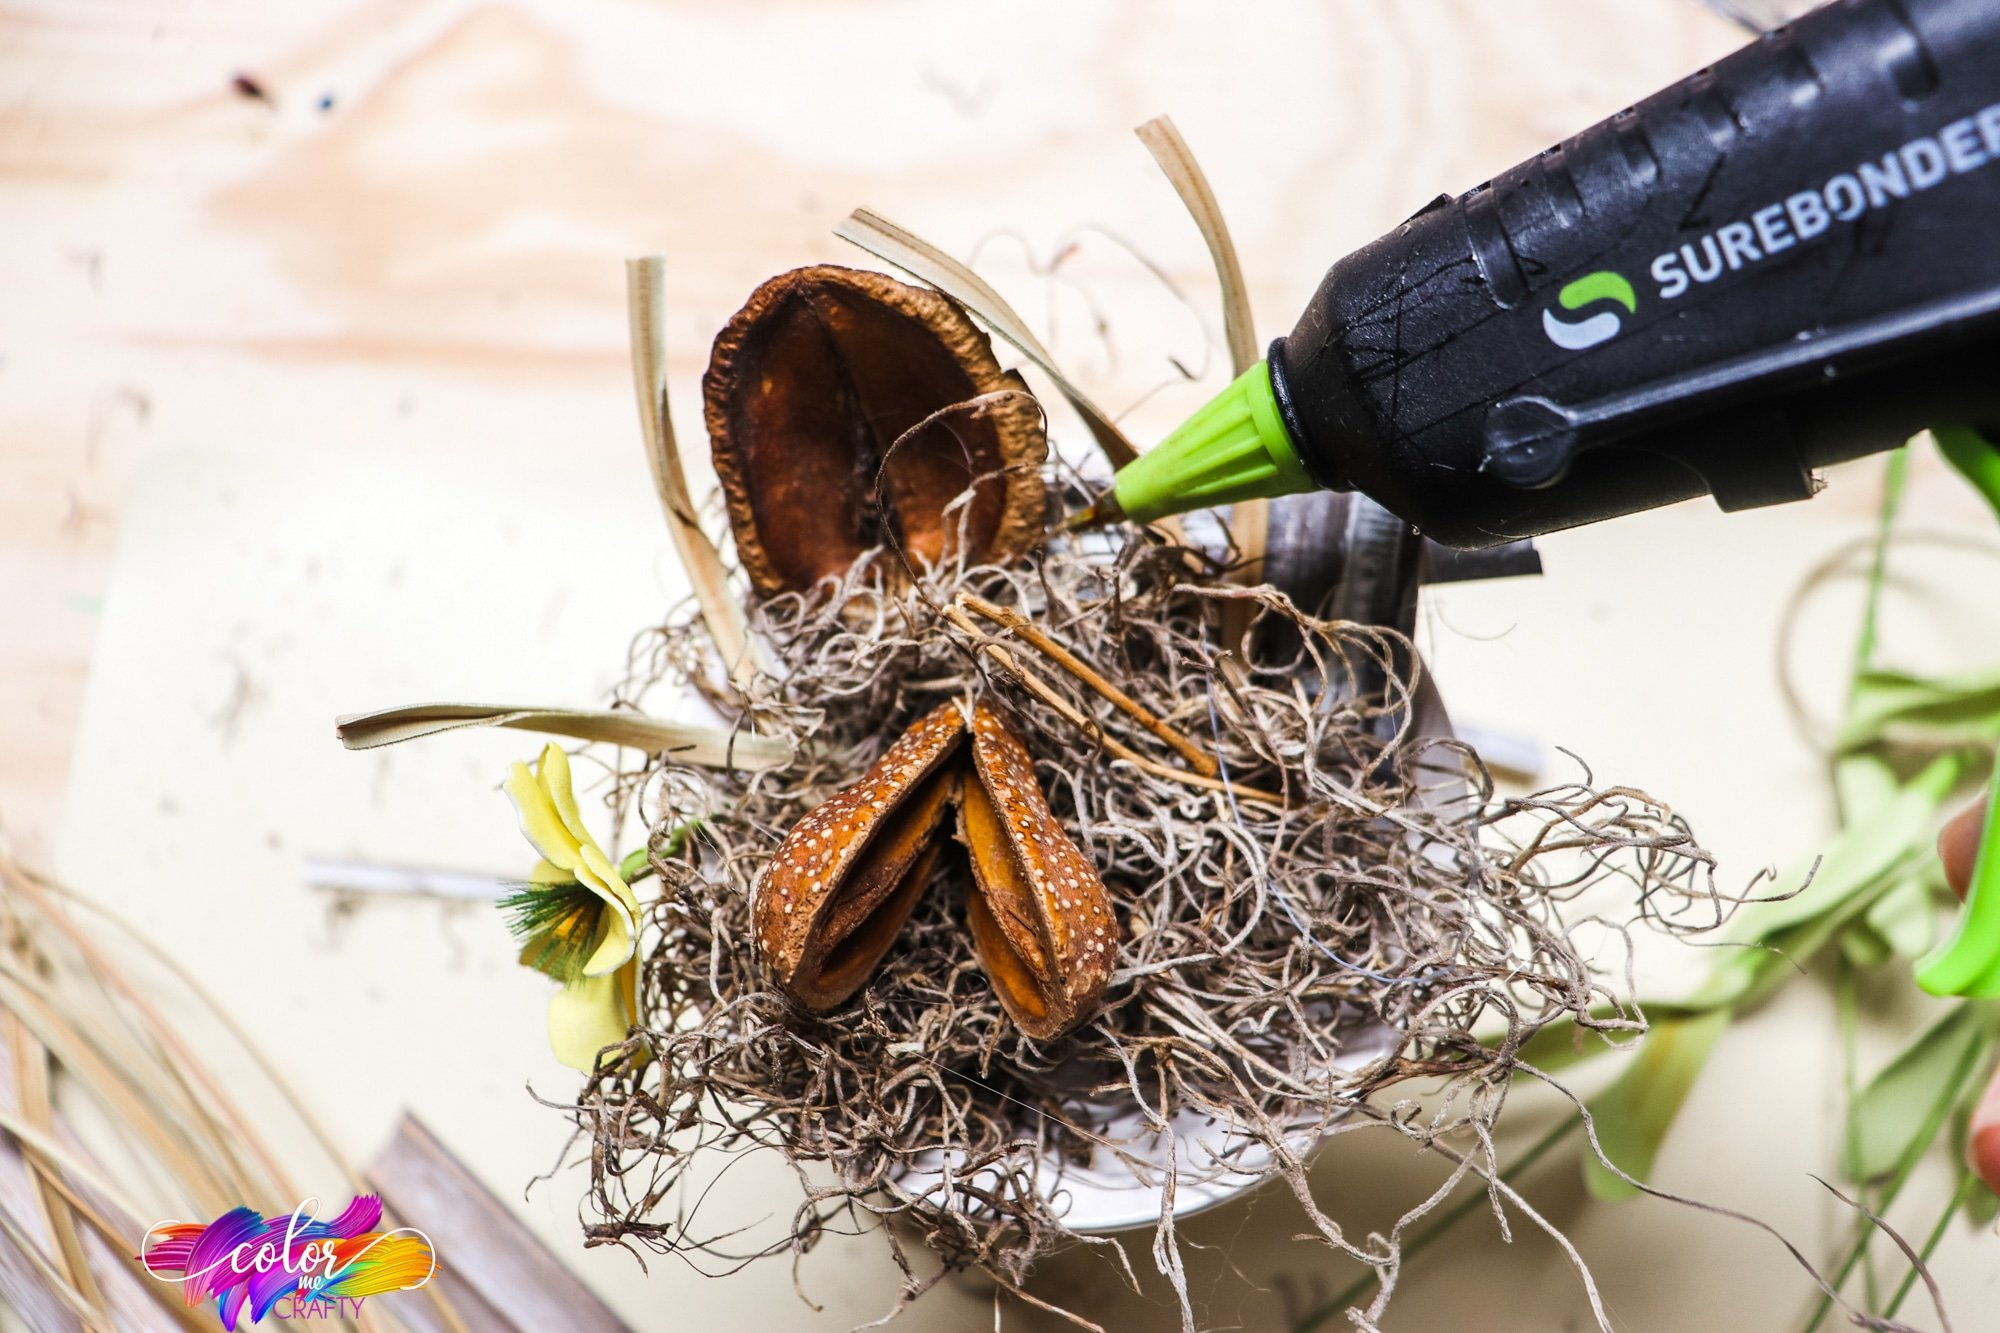 hot glue being used to make a DIY bird nest